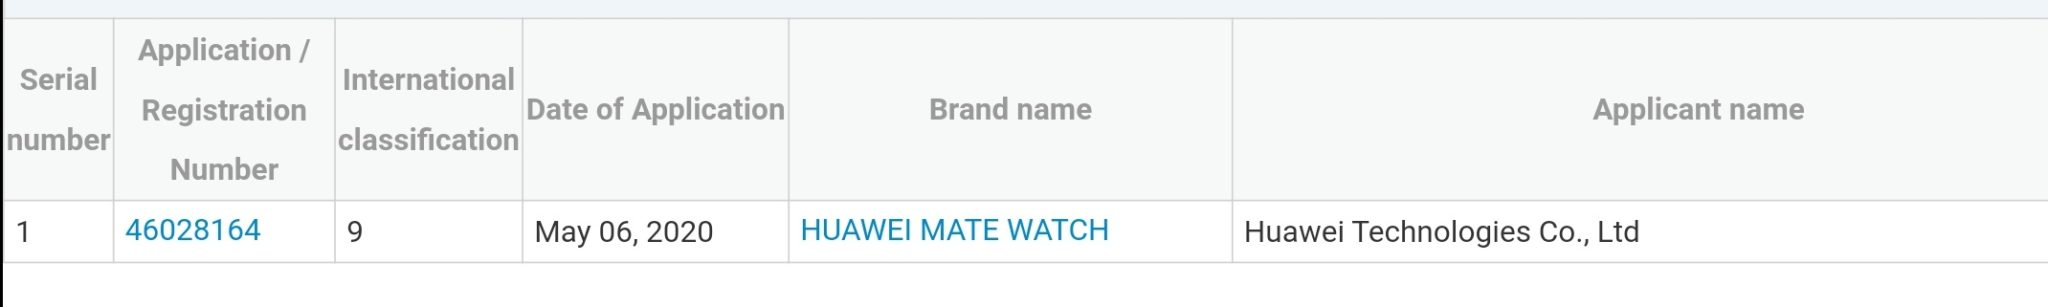 Huawei files to trademark HUAWEI MATE WATCH